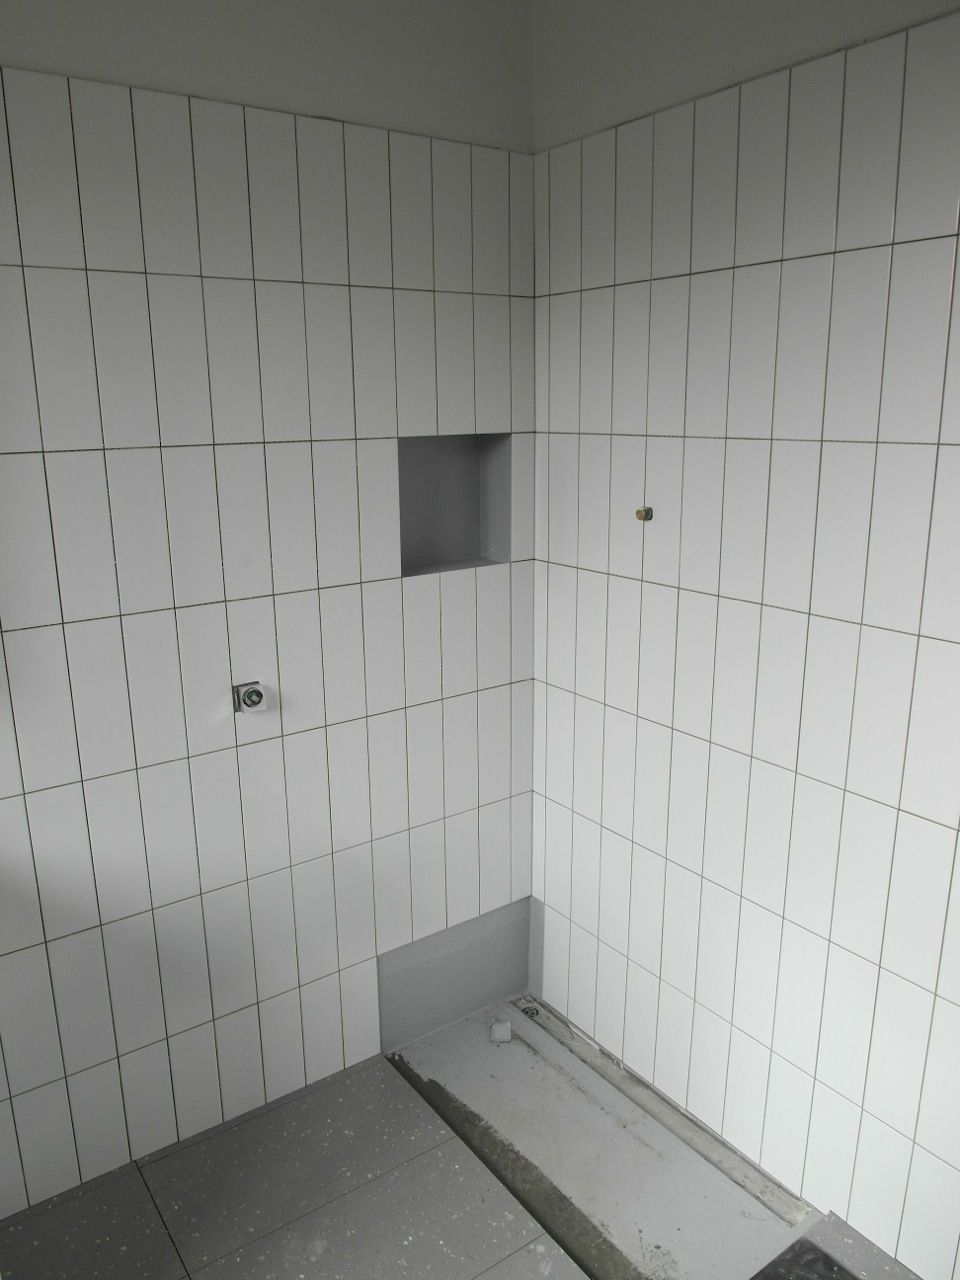 Bathroom wall tiles 300mm x 100mm gloss white in vertical